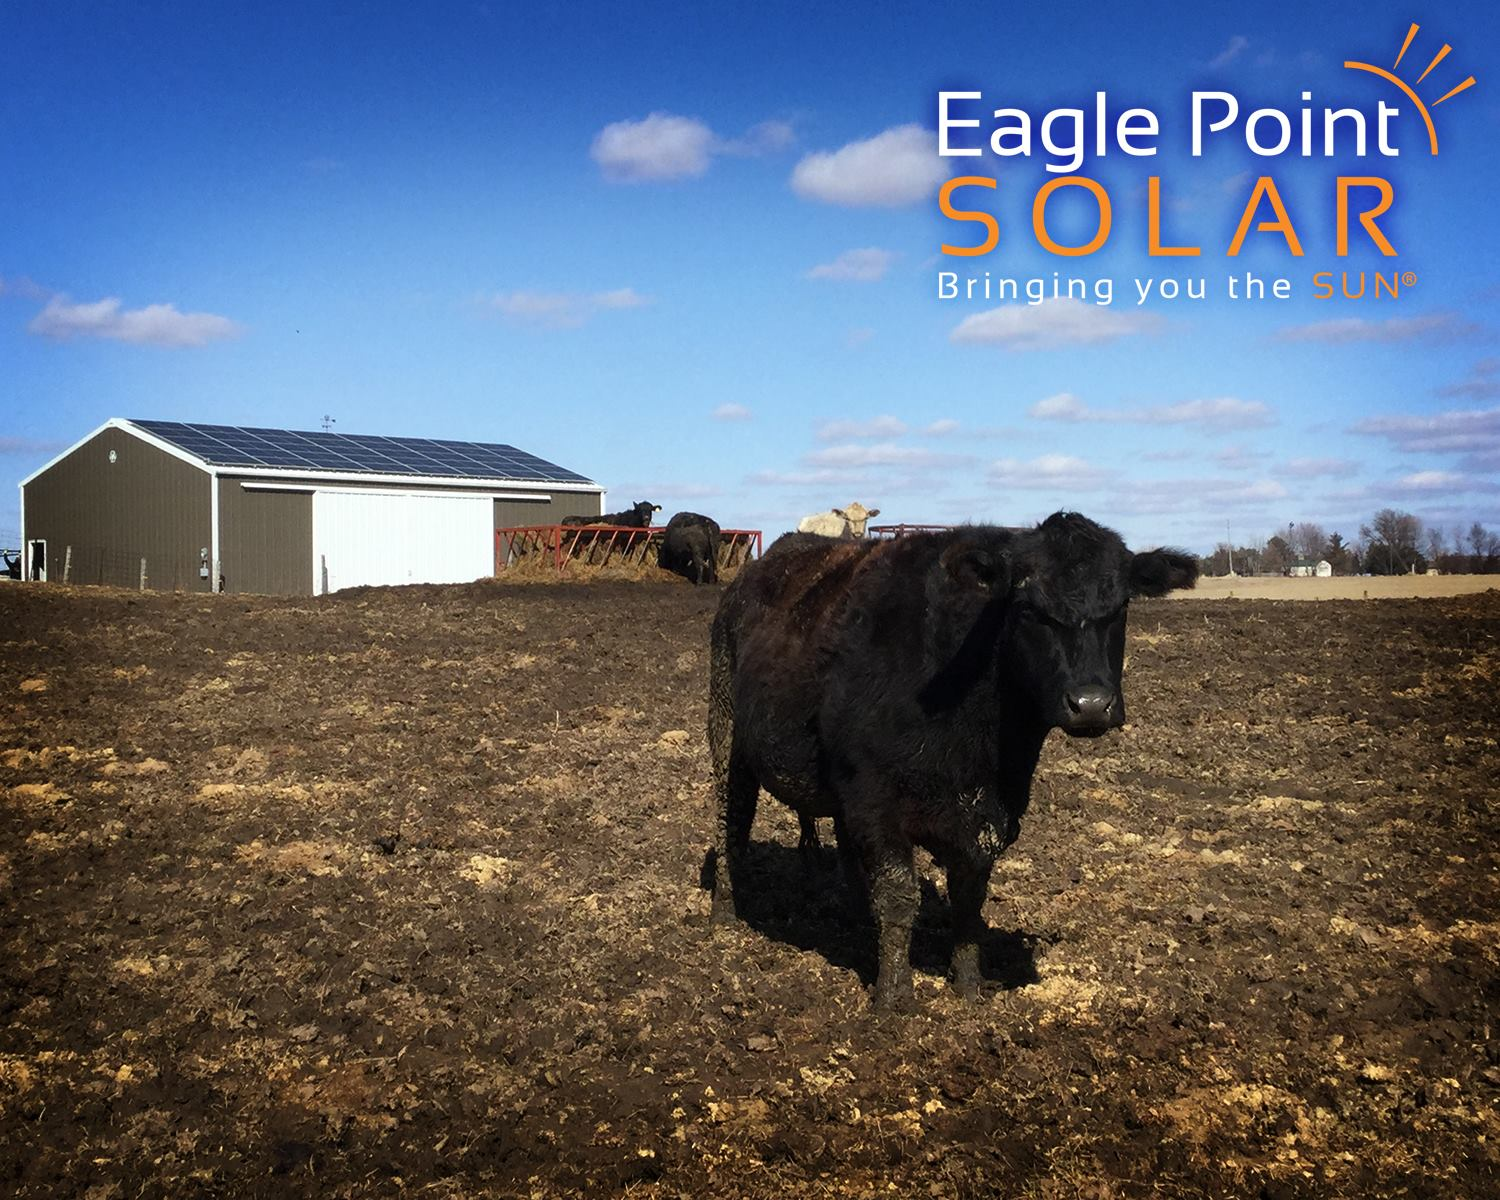 Photo of black cow in a pasture in front of a roof mounted solar array